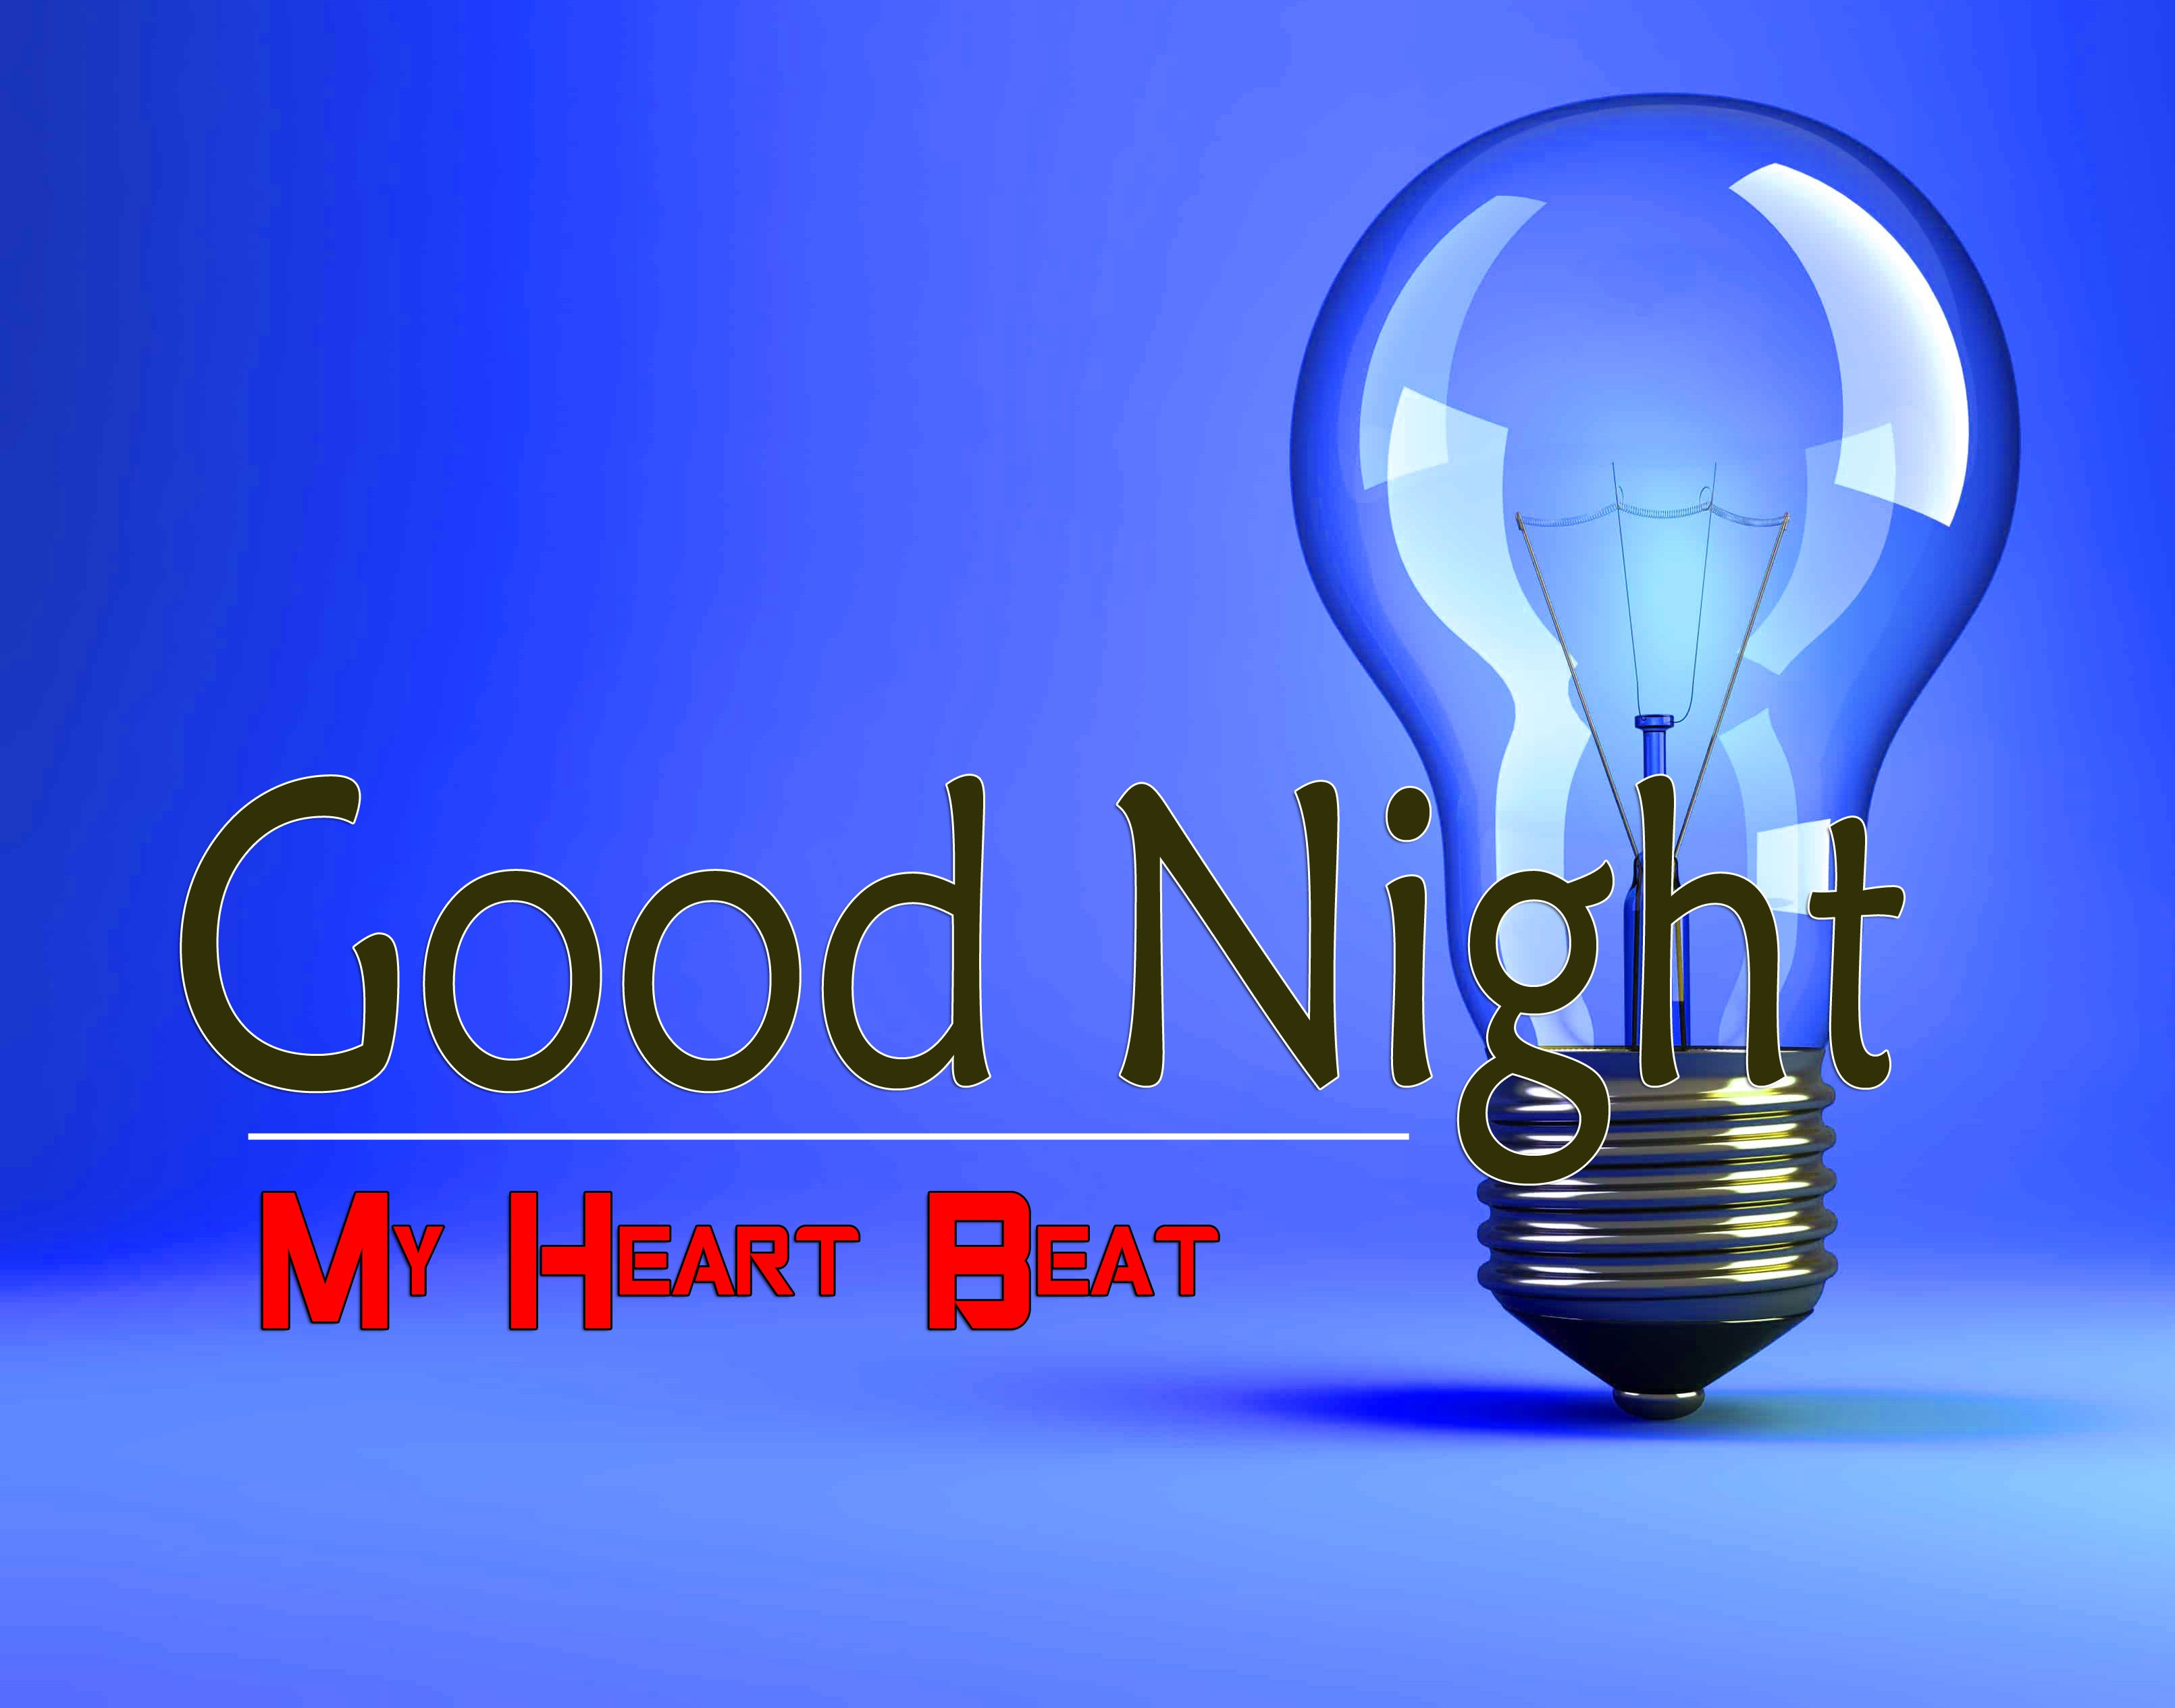 Good Night Wishes k Images Photo for Whatsapp Facebook